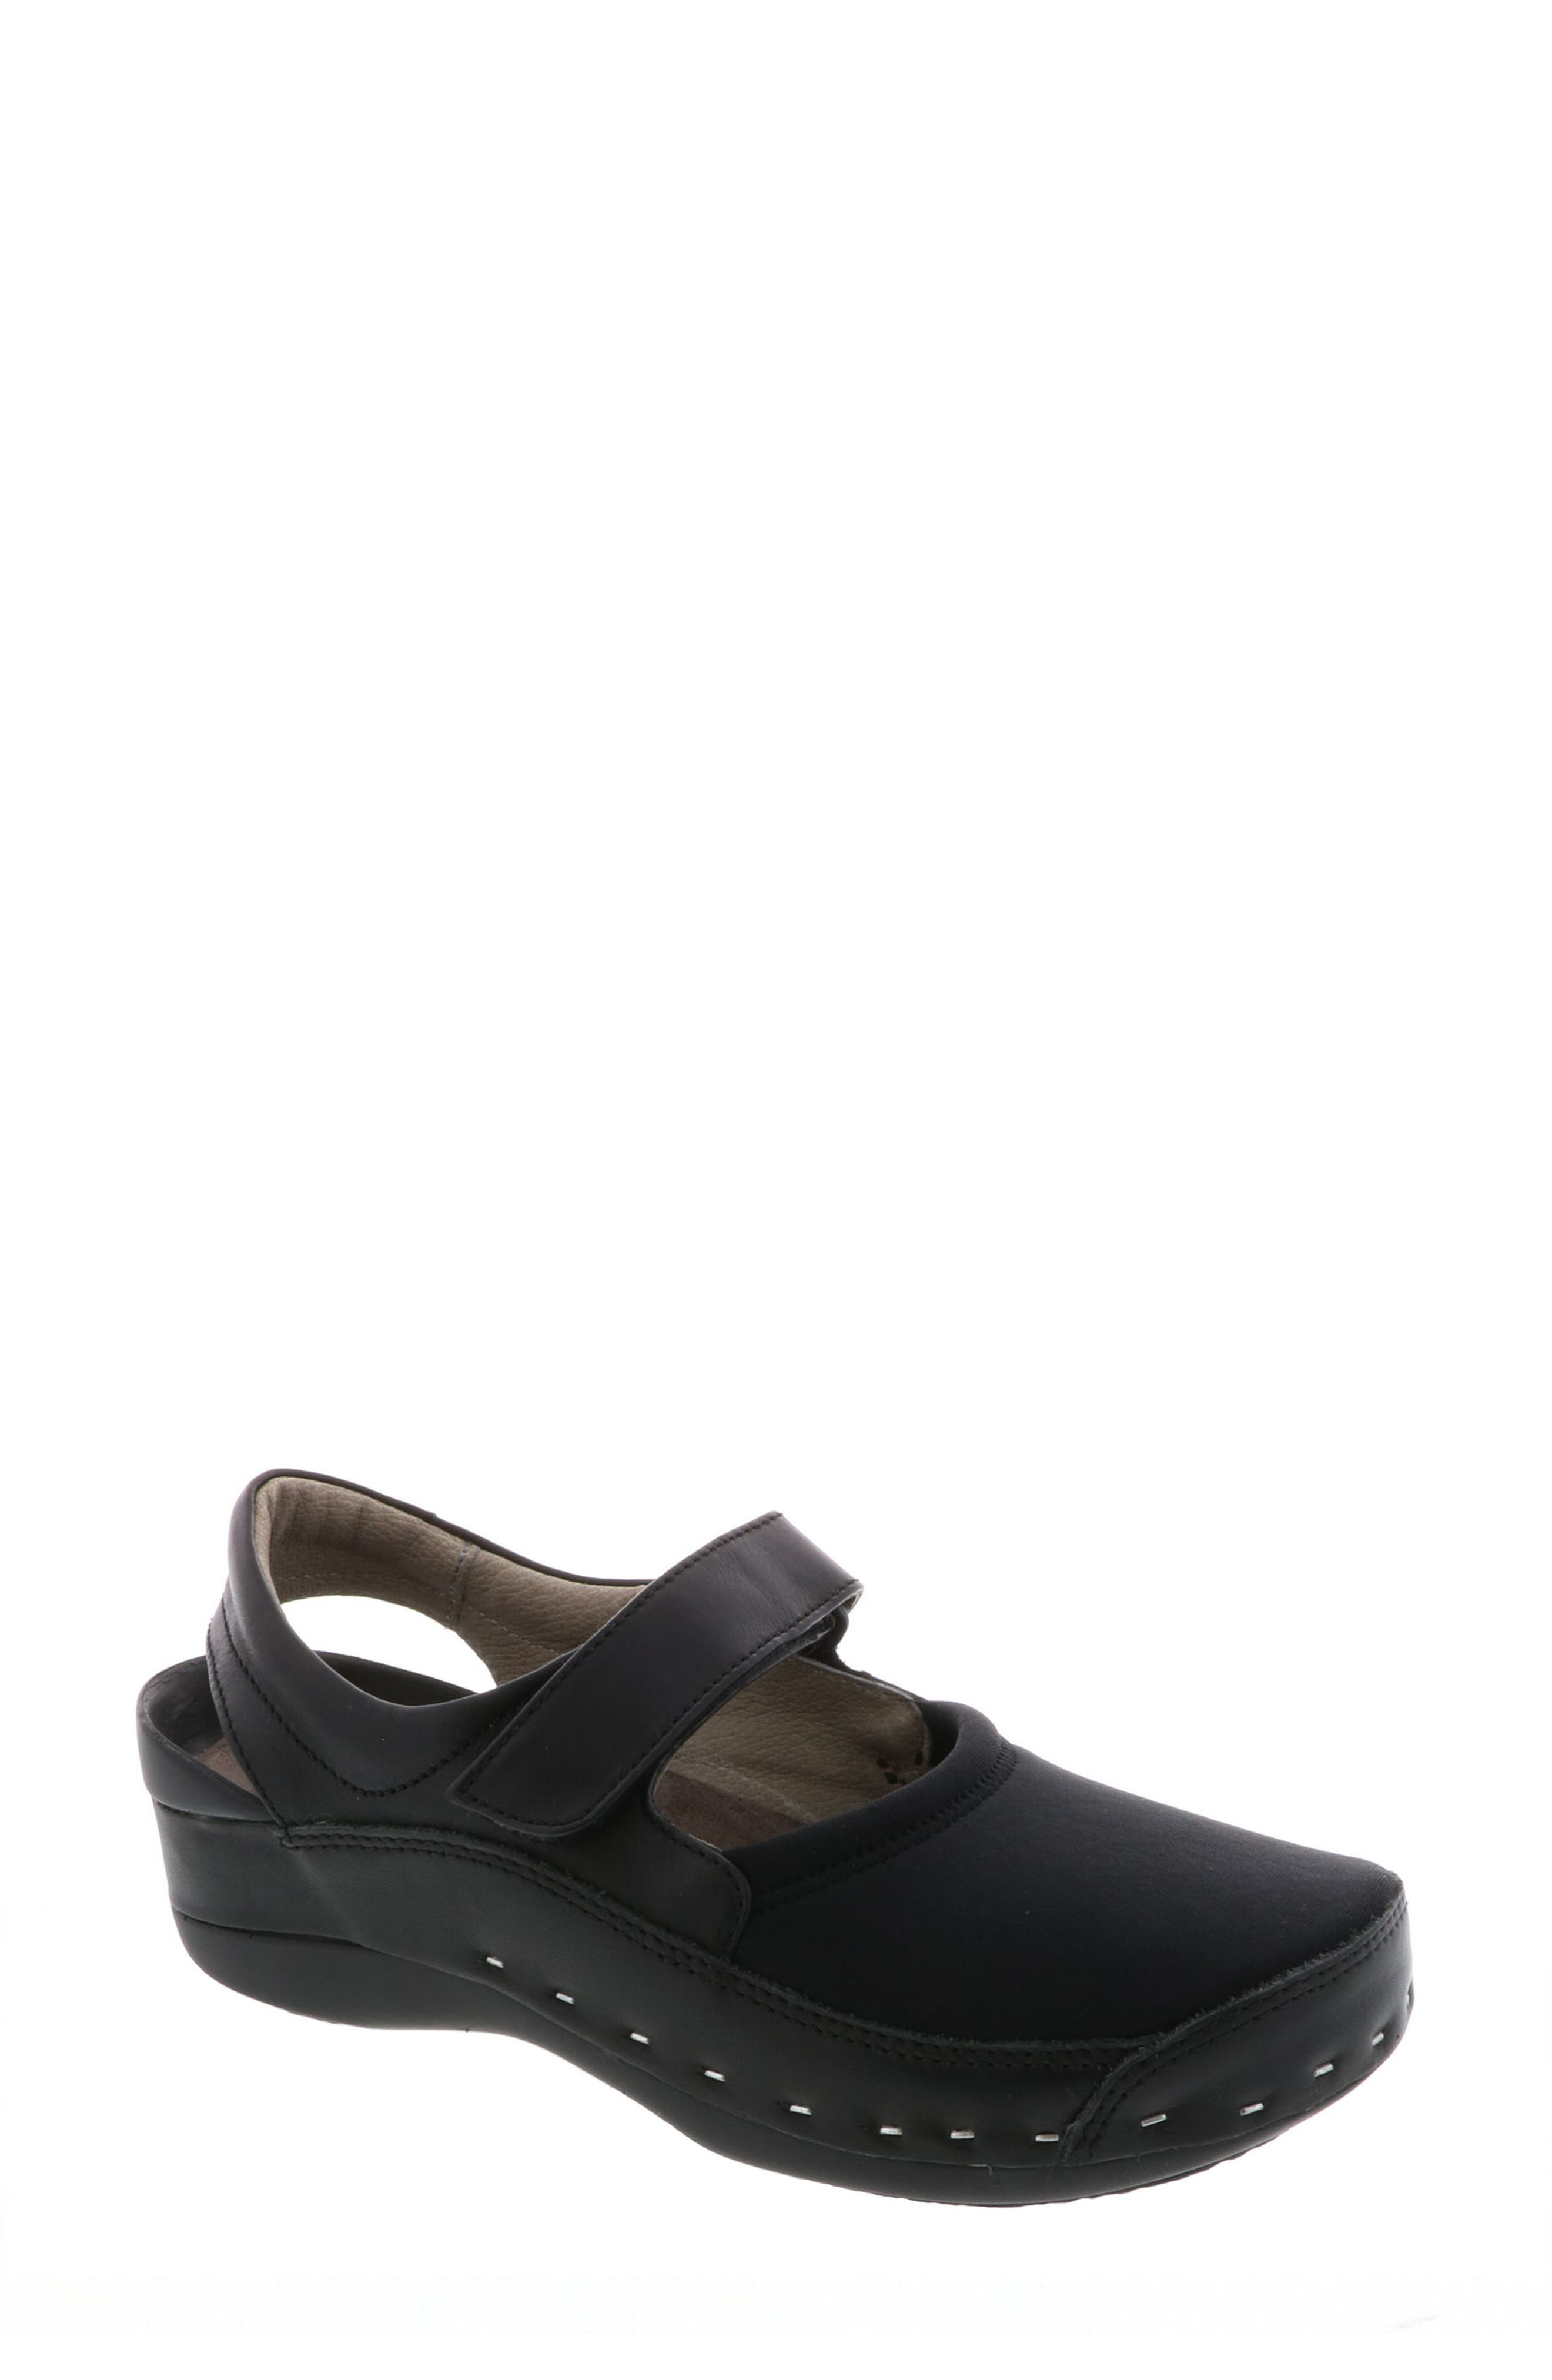 WOLKY,                             Ankle Strap Clog,                             Main thumbnail 1, color,                             BLACK LEATHER